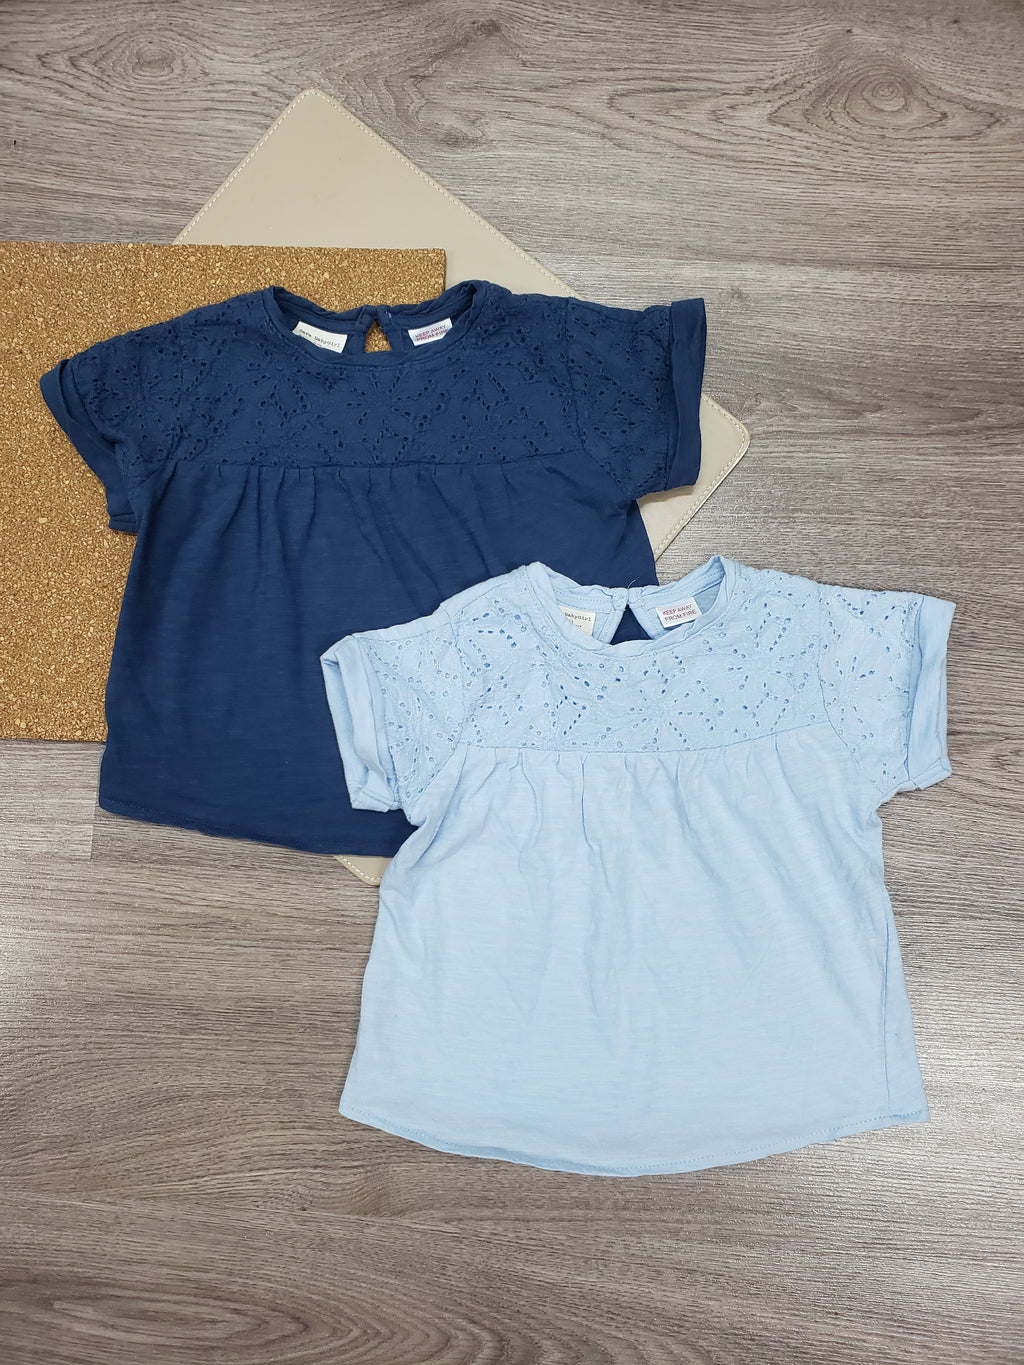 Duo de Chandail zara fille 2-3T